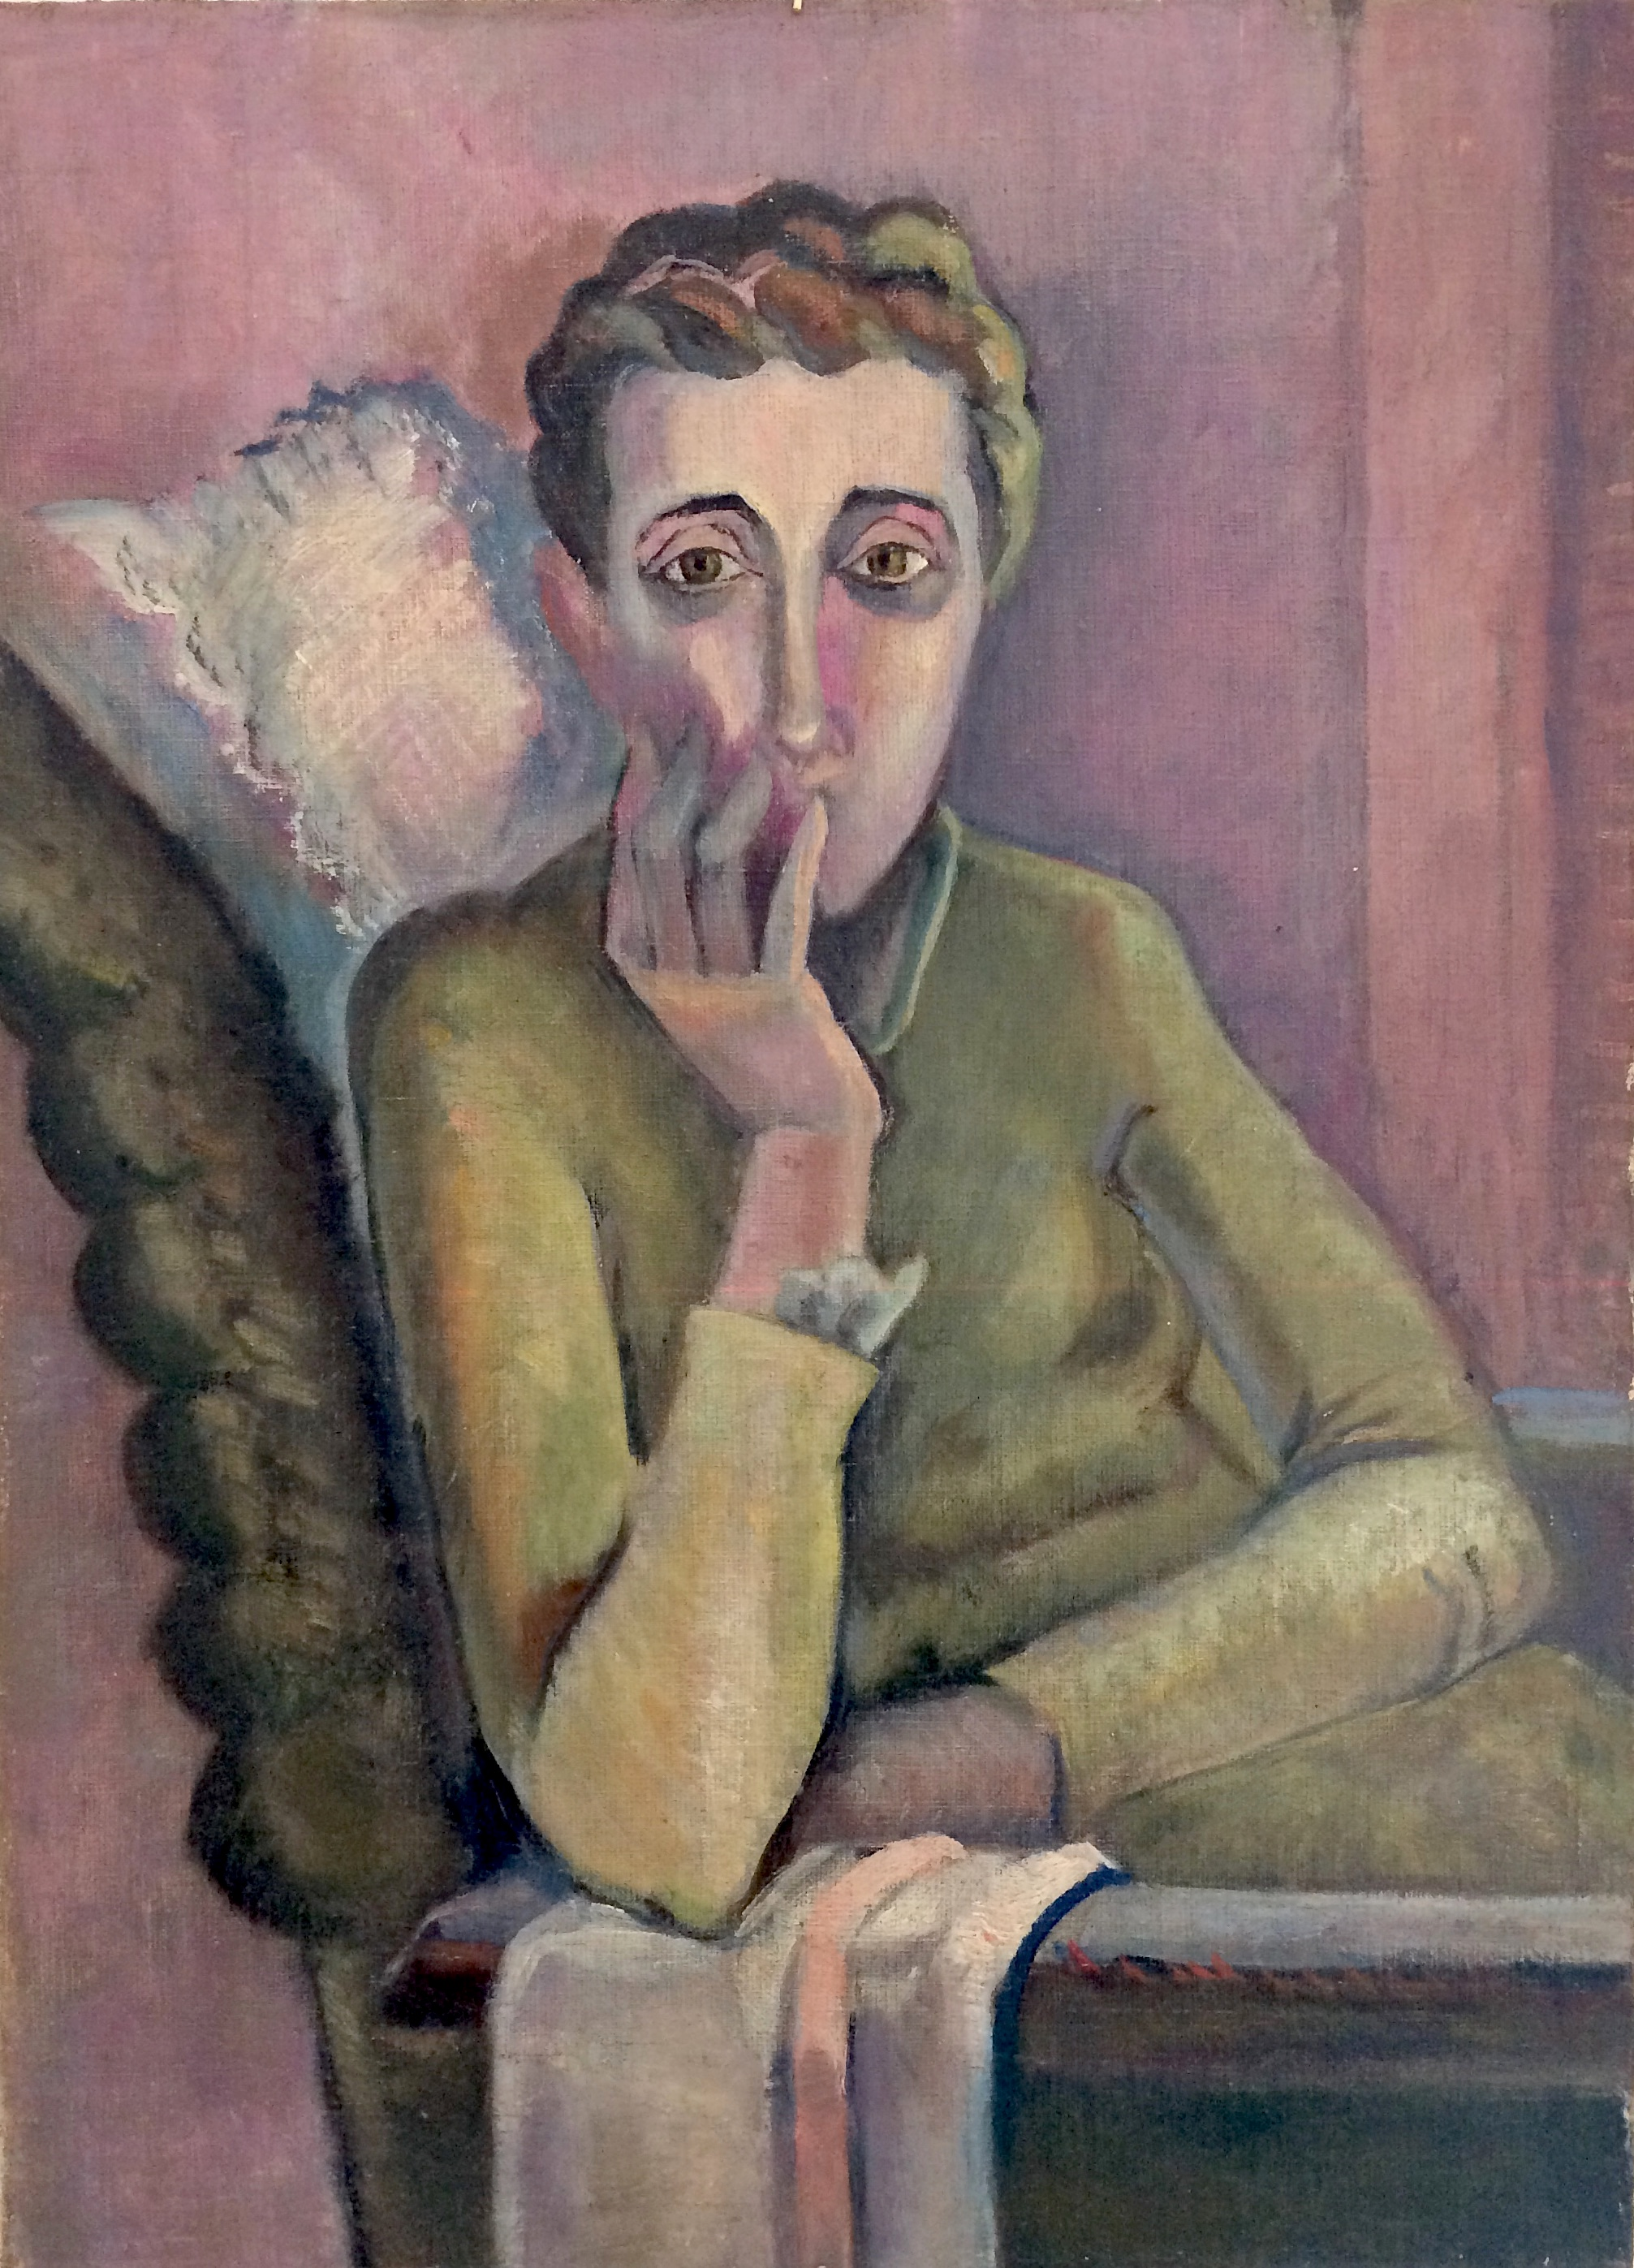 Clem Haupers    Self Portrait (Wearing Green) , c. 1930s  Oil on board  26 ½ x 19 inches